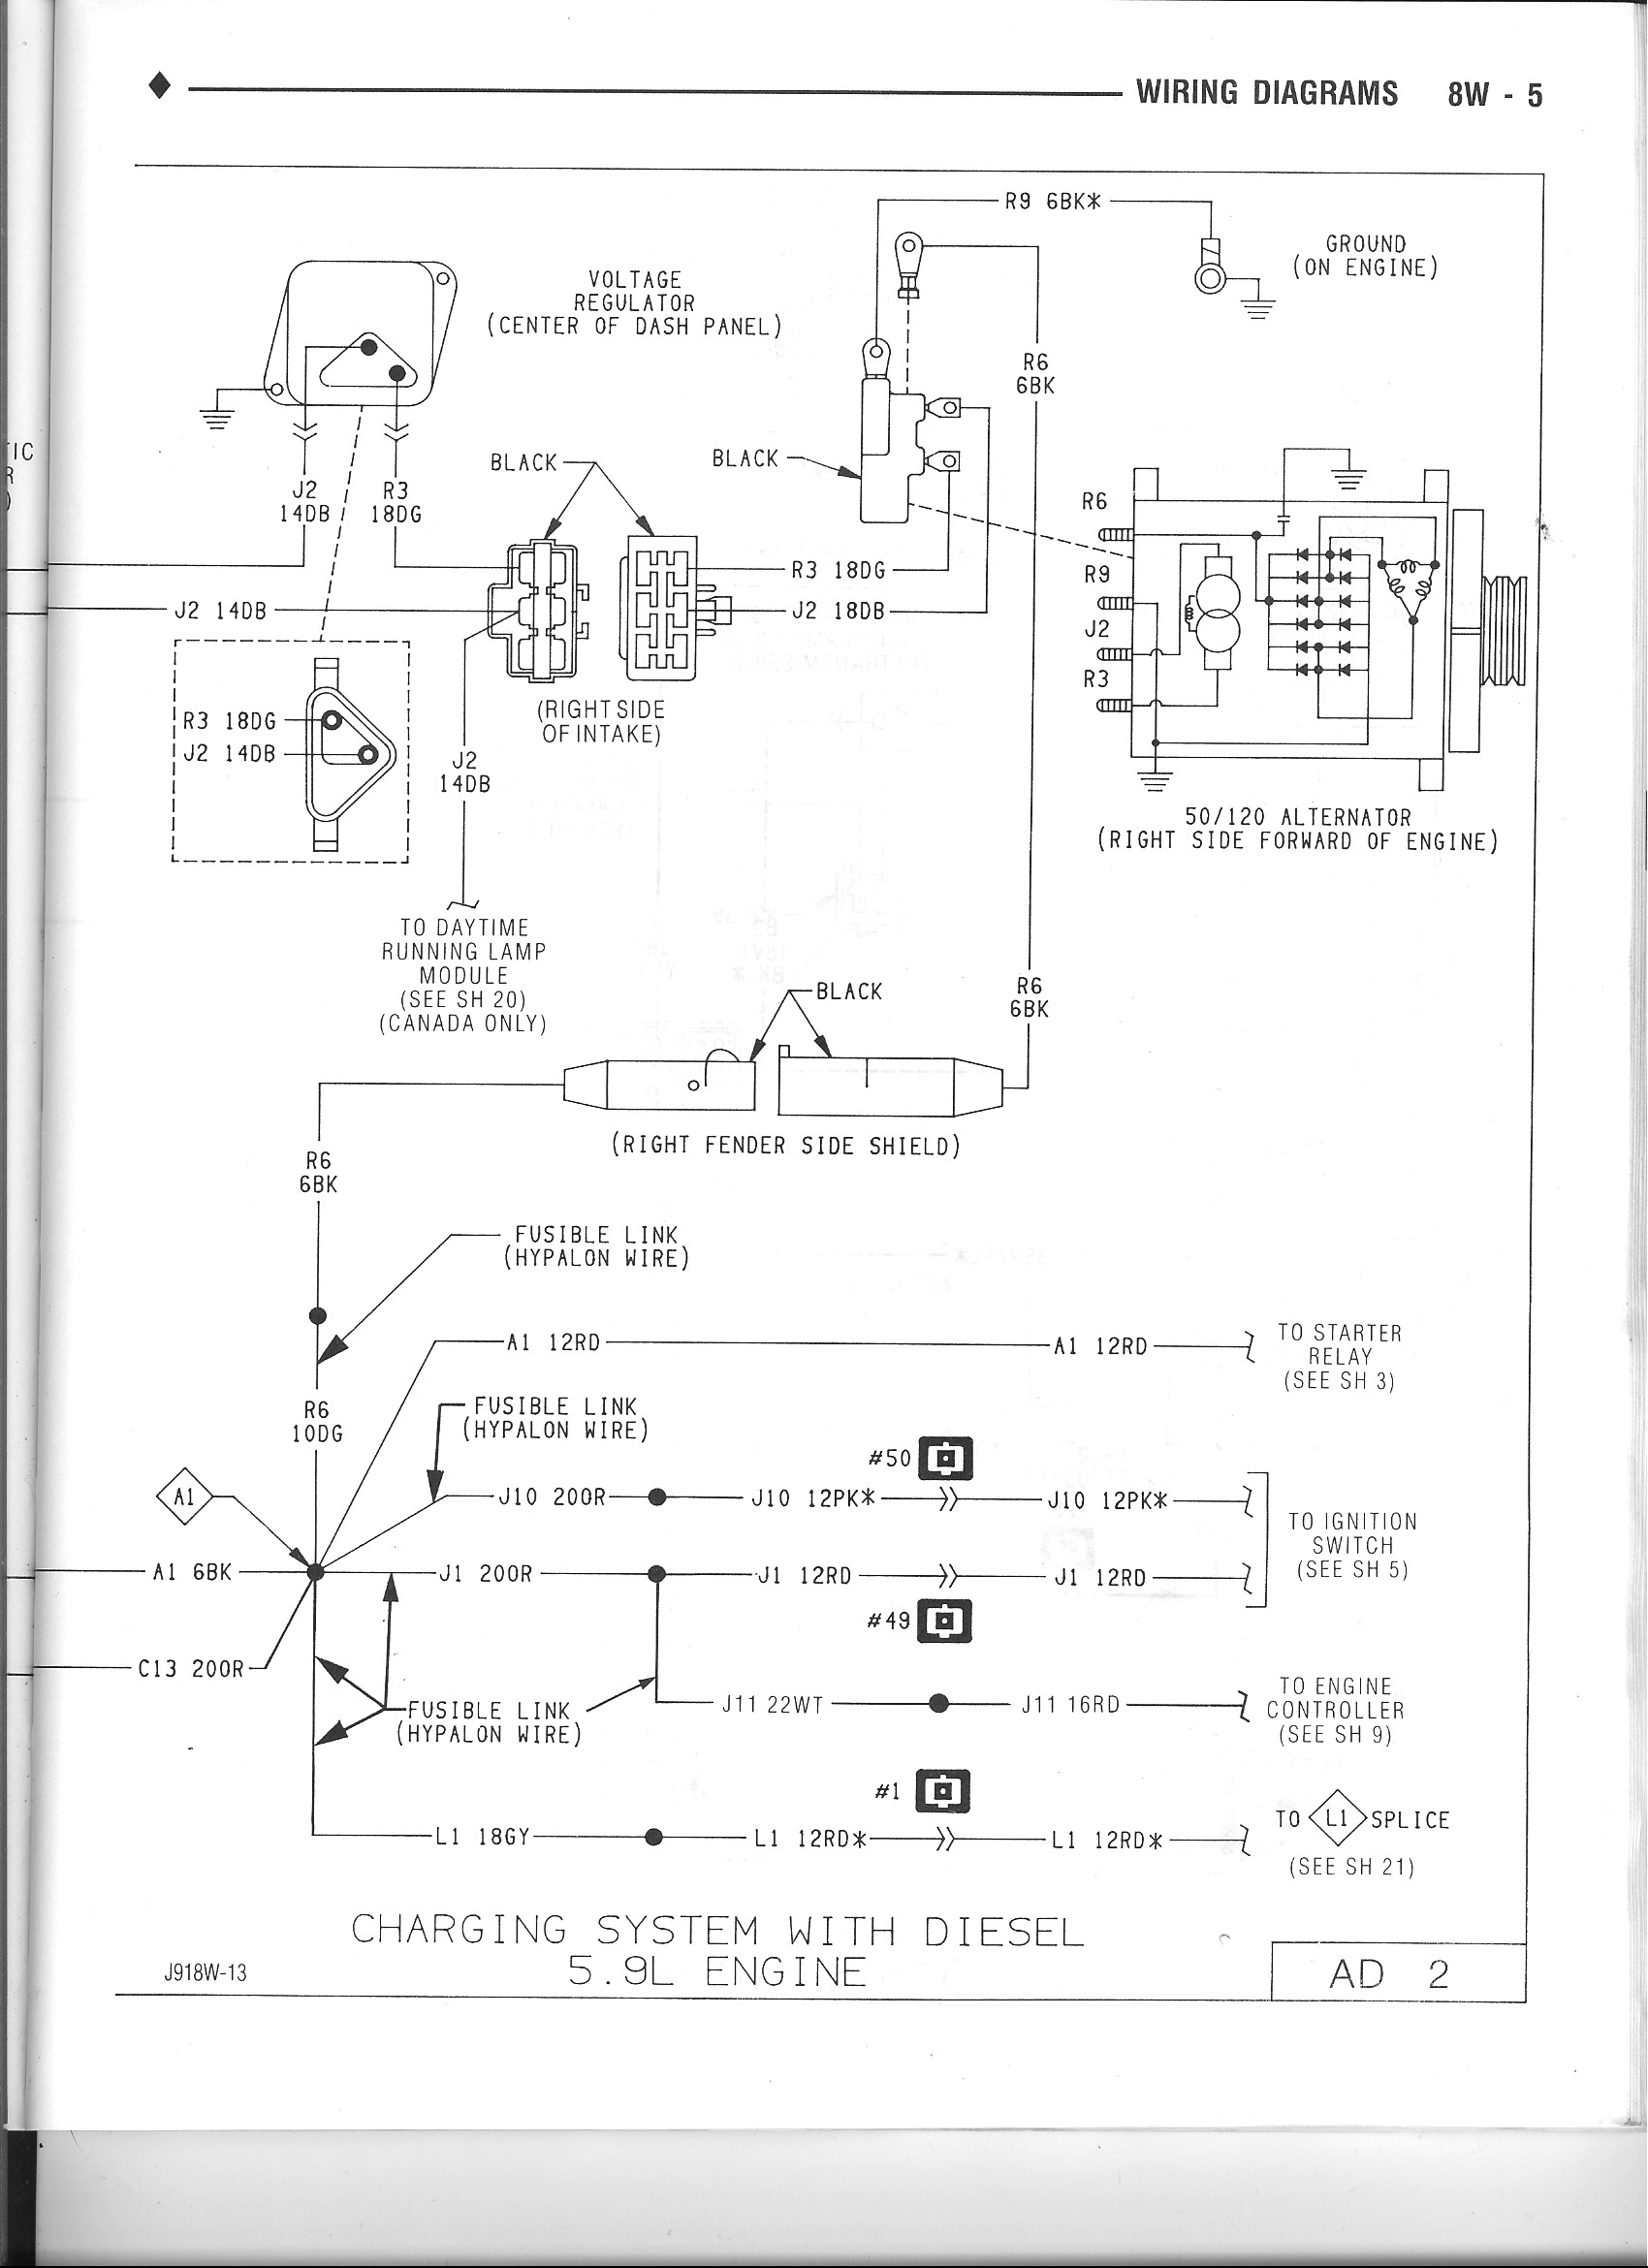 1991 Cummins Wiring Diagram Change Your Idea With Dodge Truck Alternator 101 Diesel Resource Forums Rh Dieseltruckresource Com N14 Pdf